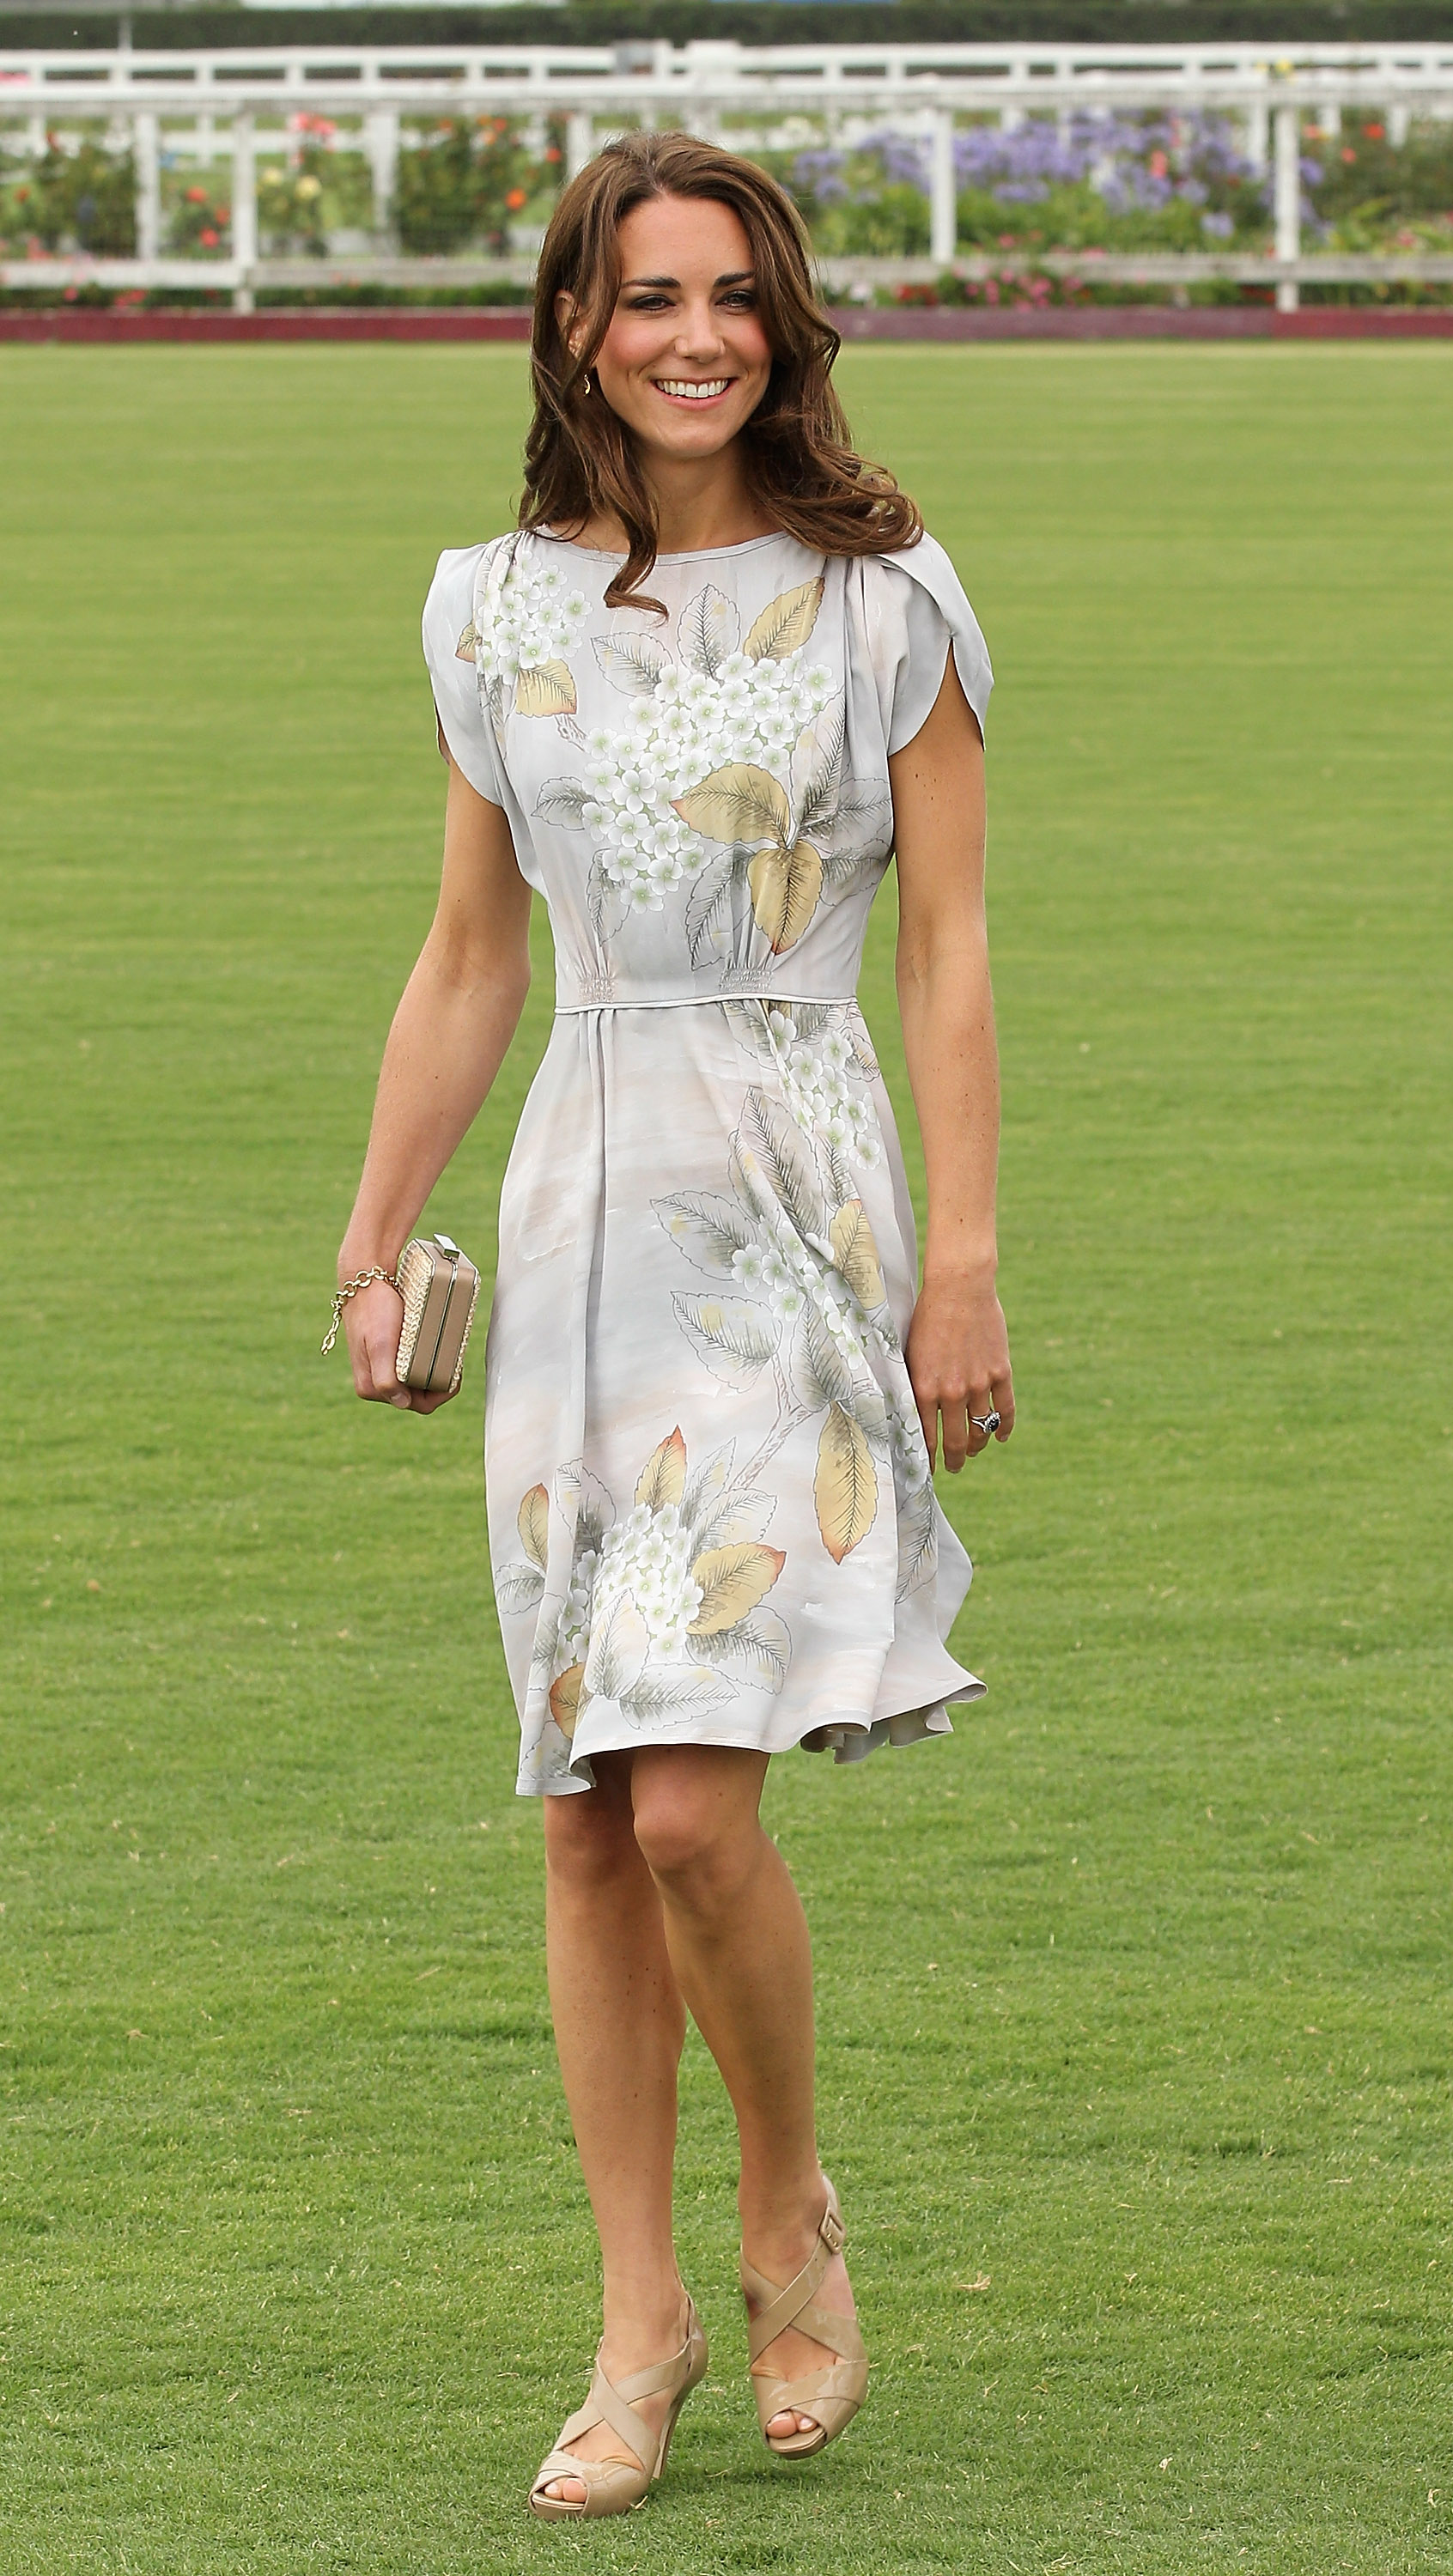 <strong>Scoring on the Field</strong>                                   The Duchess chose a stunning Jenny Packham shift to wear at the Foundation Polo Challenge in Santa Barbara, Calif., on July 9, 2011. Prince William scored four goals during the match, helping his team, Royal Salute, win the tournament.